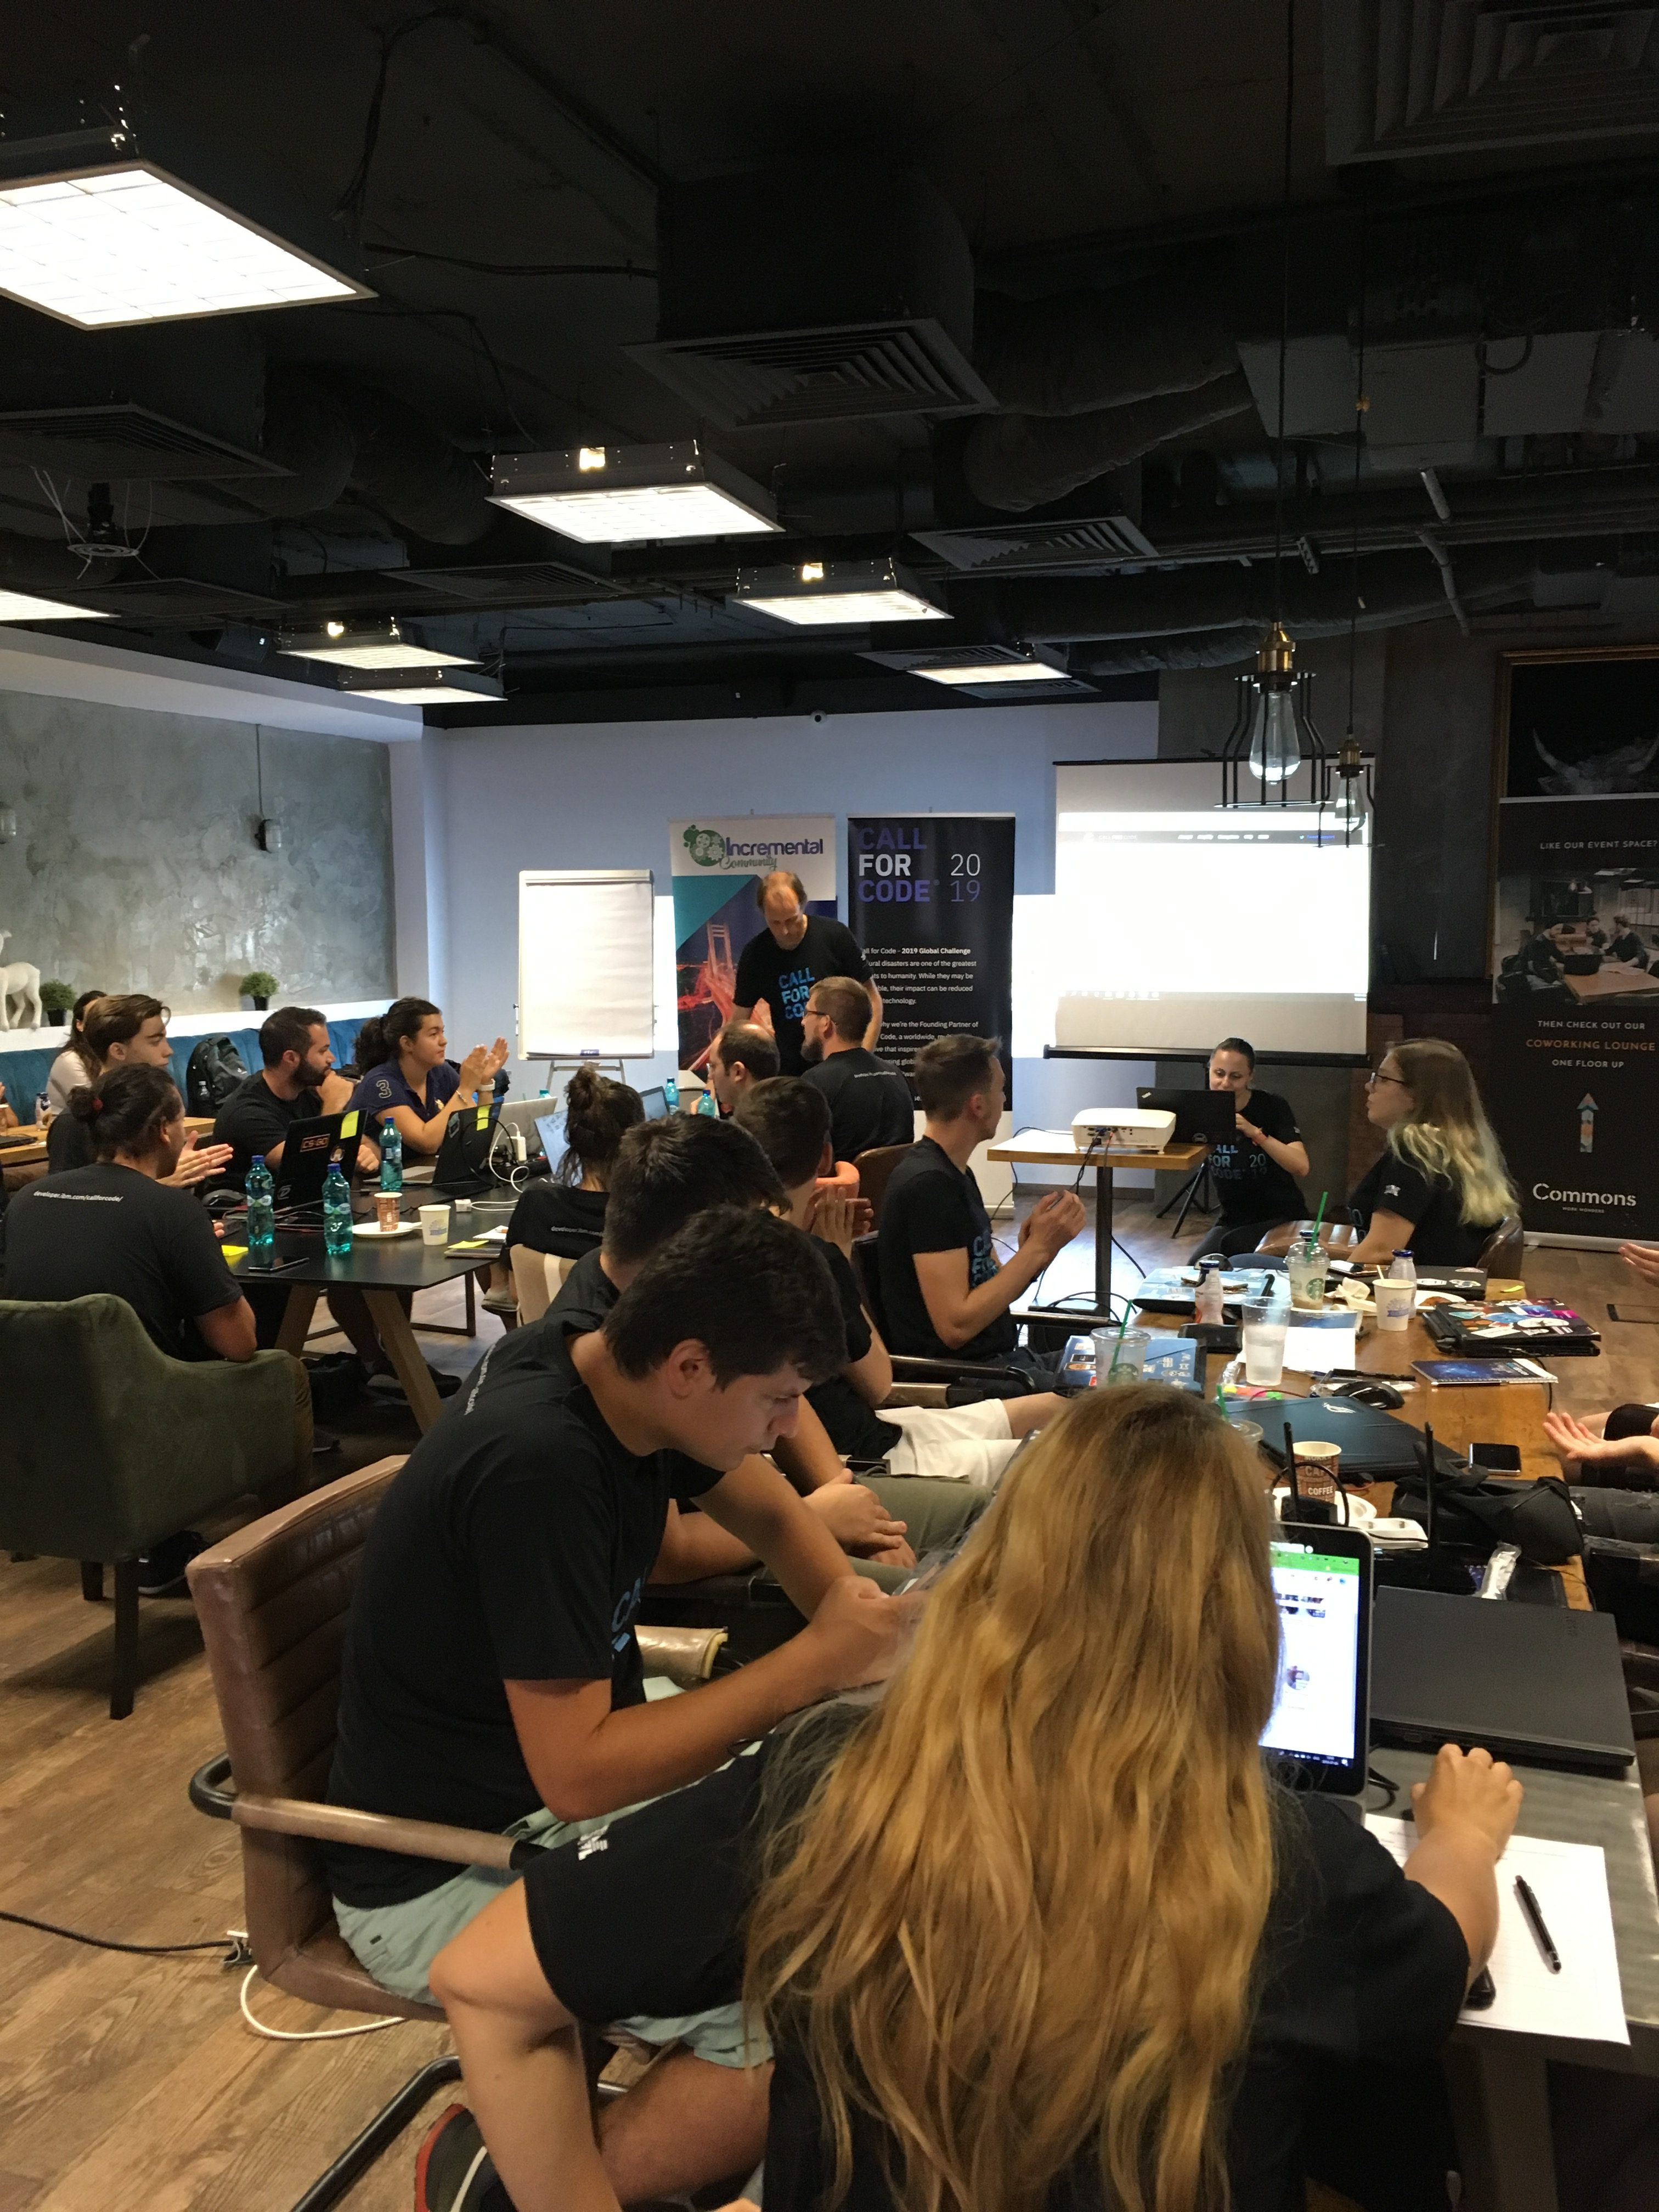 IBM România a găzduit hackathon-ul Call for Code, parte a inițiativei globale Call for Code 2019